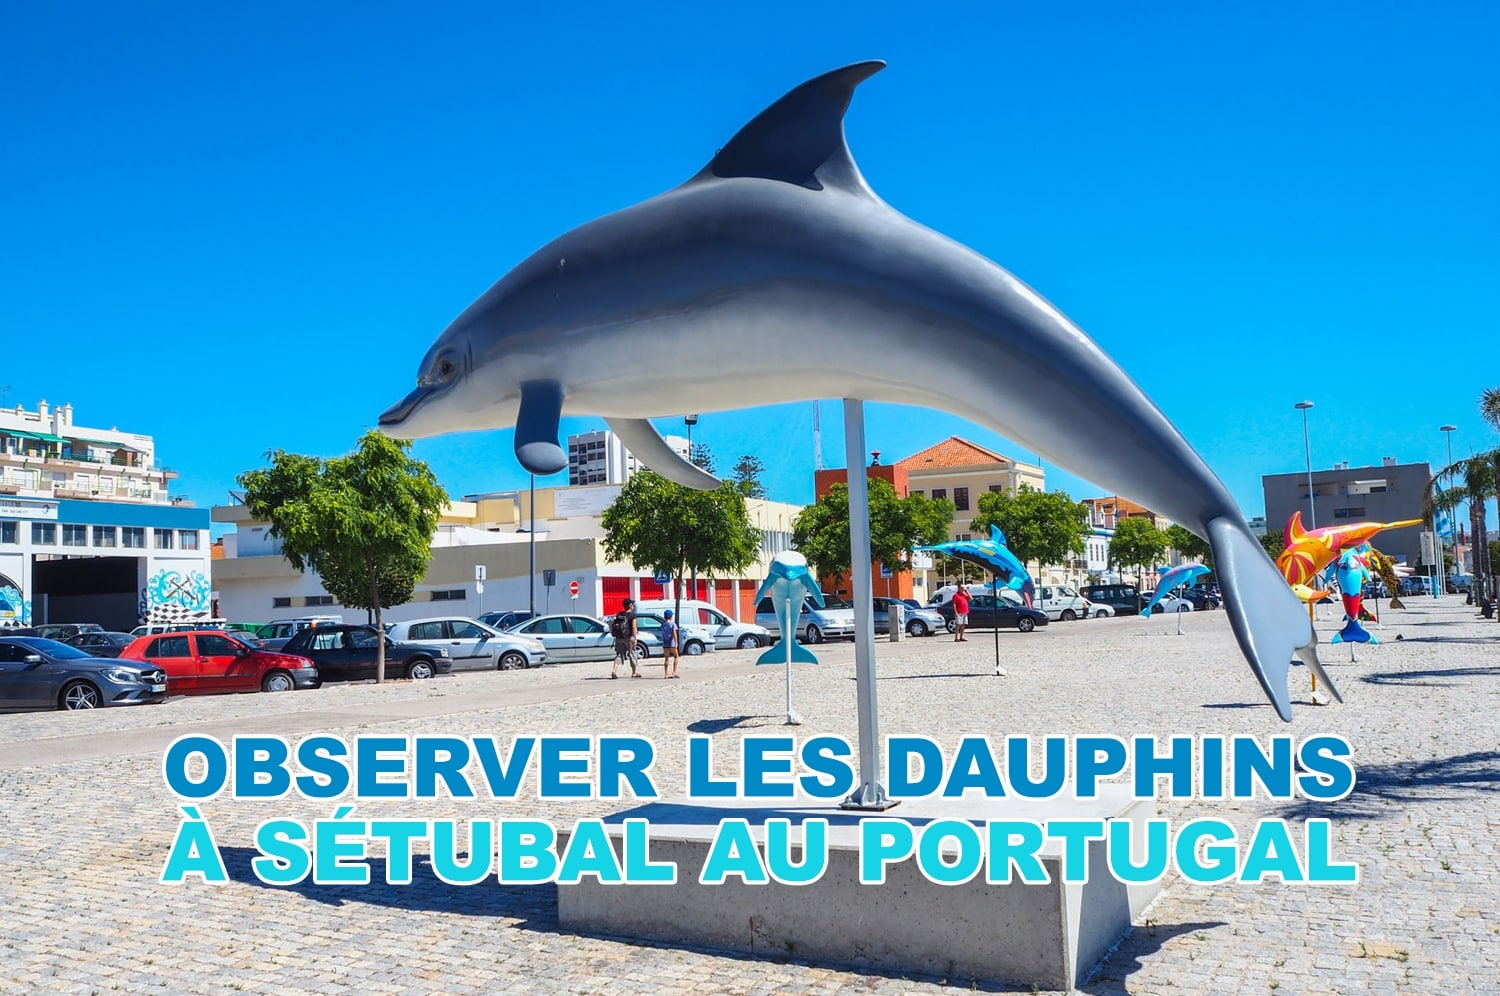 Excursion pour observer les dauphins à Sétubal au Portugal